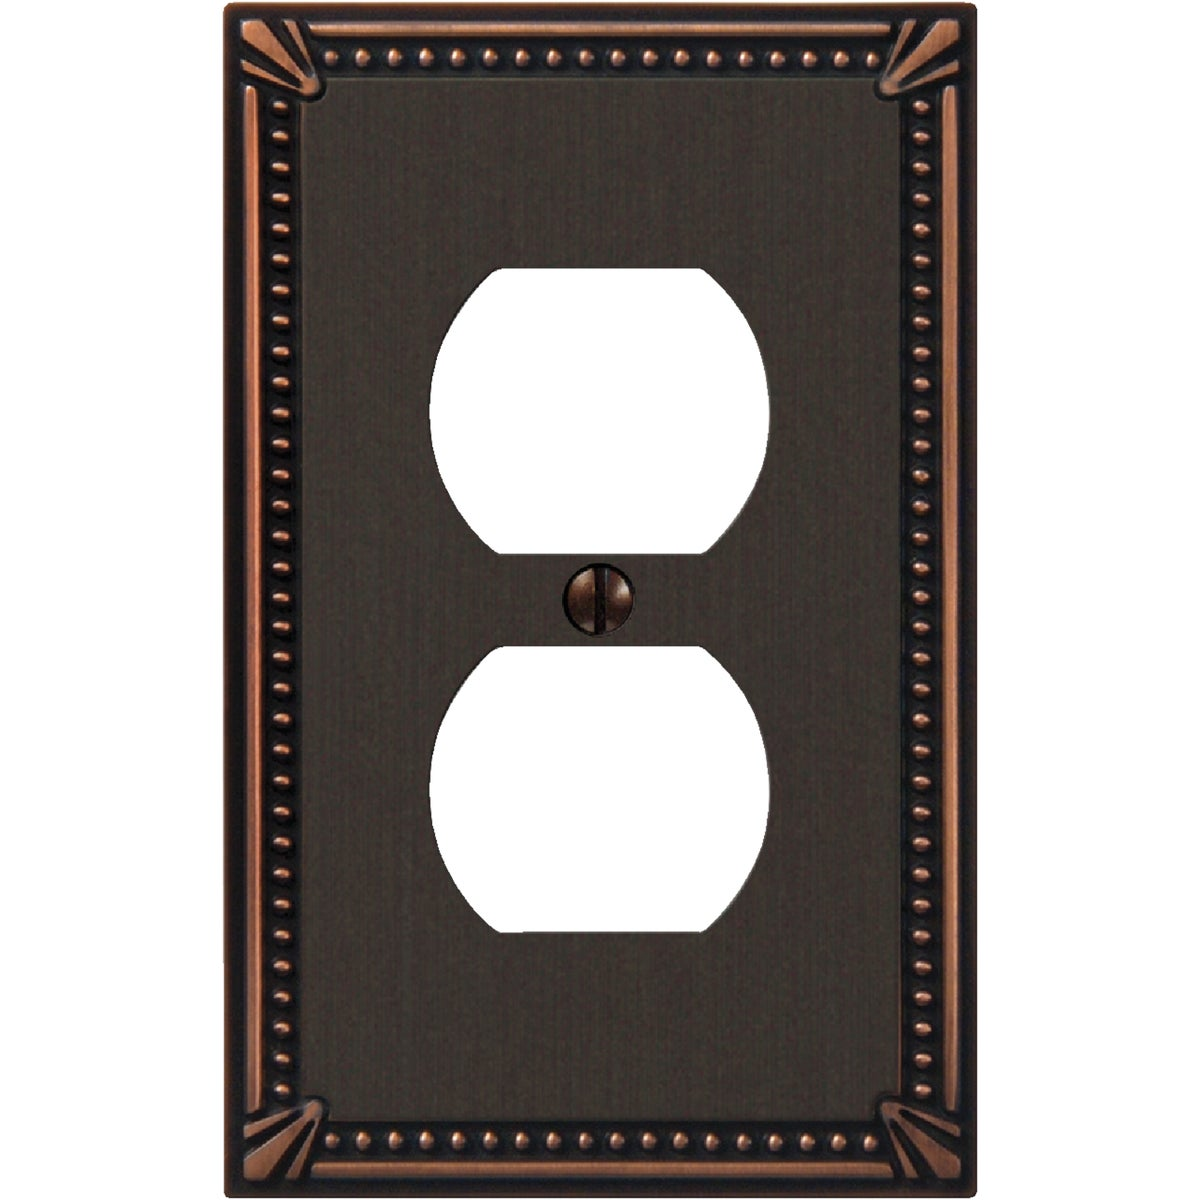 AB OUTLET WALLPLATE